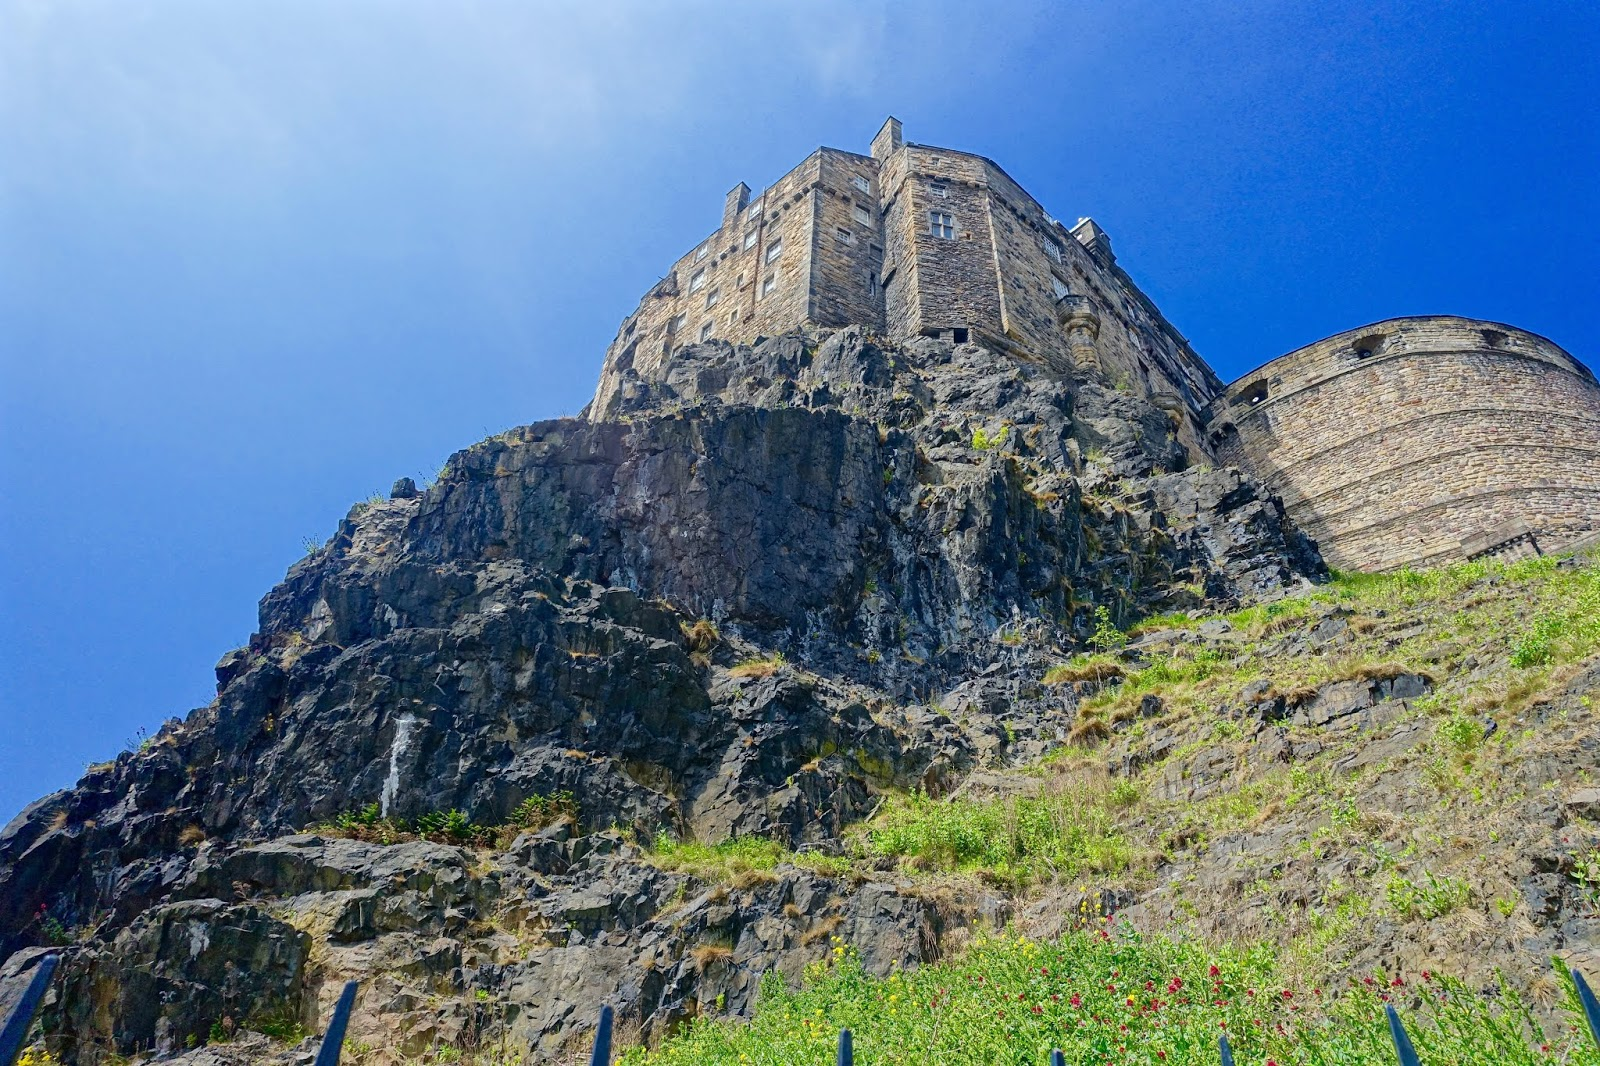 edinburgh castle in the sushine with blue sky backdrop